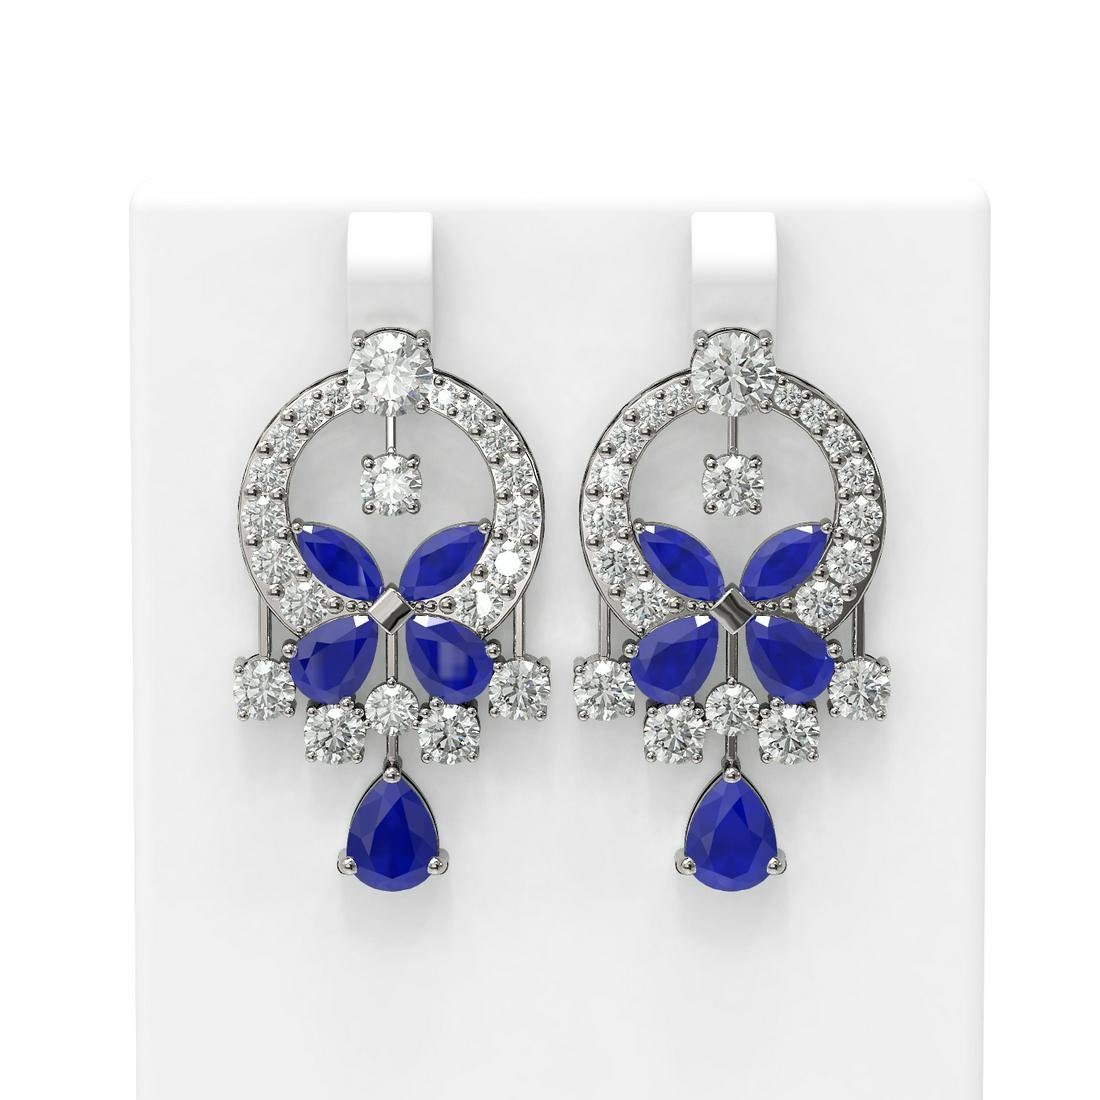 17.33 ctw Sapphire & Diamond Earrings 18K White Gold